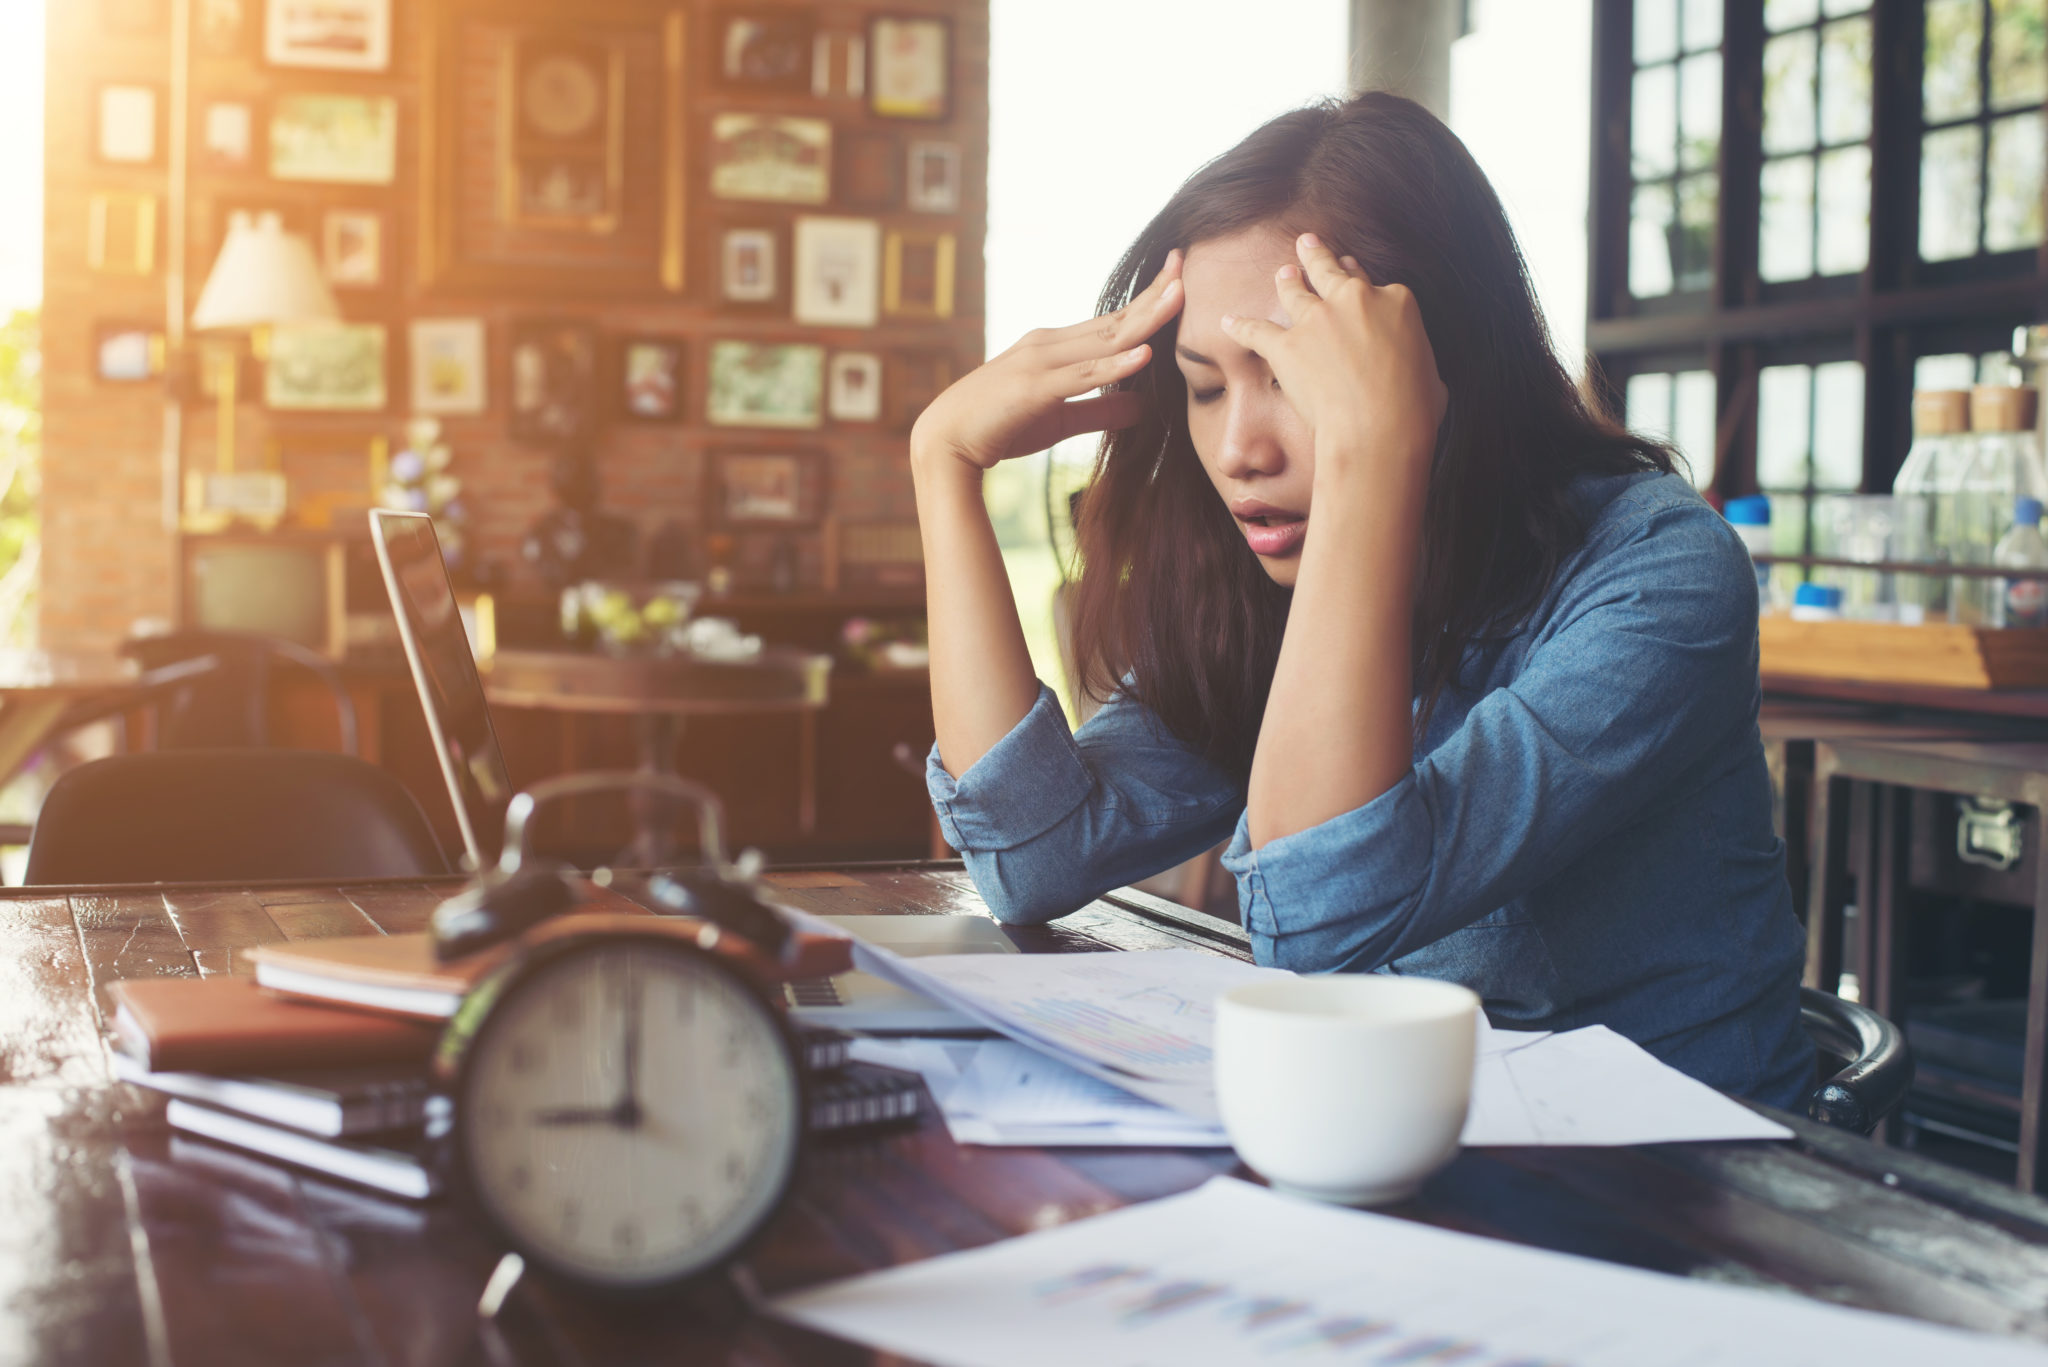 Women's job satisfaction lowest in Hong Kong, Singapore and Malaysia | HR News - HR Magazine | HR Online